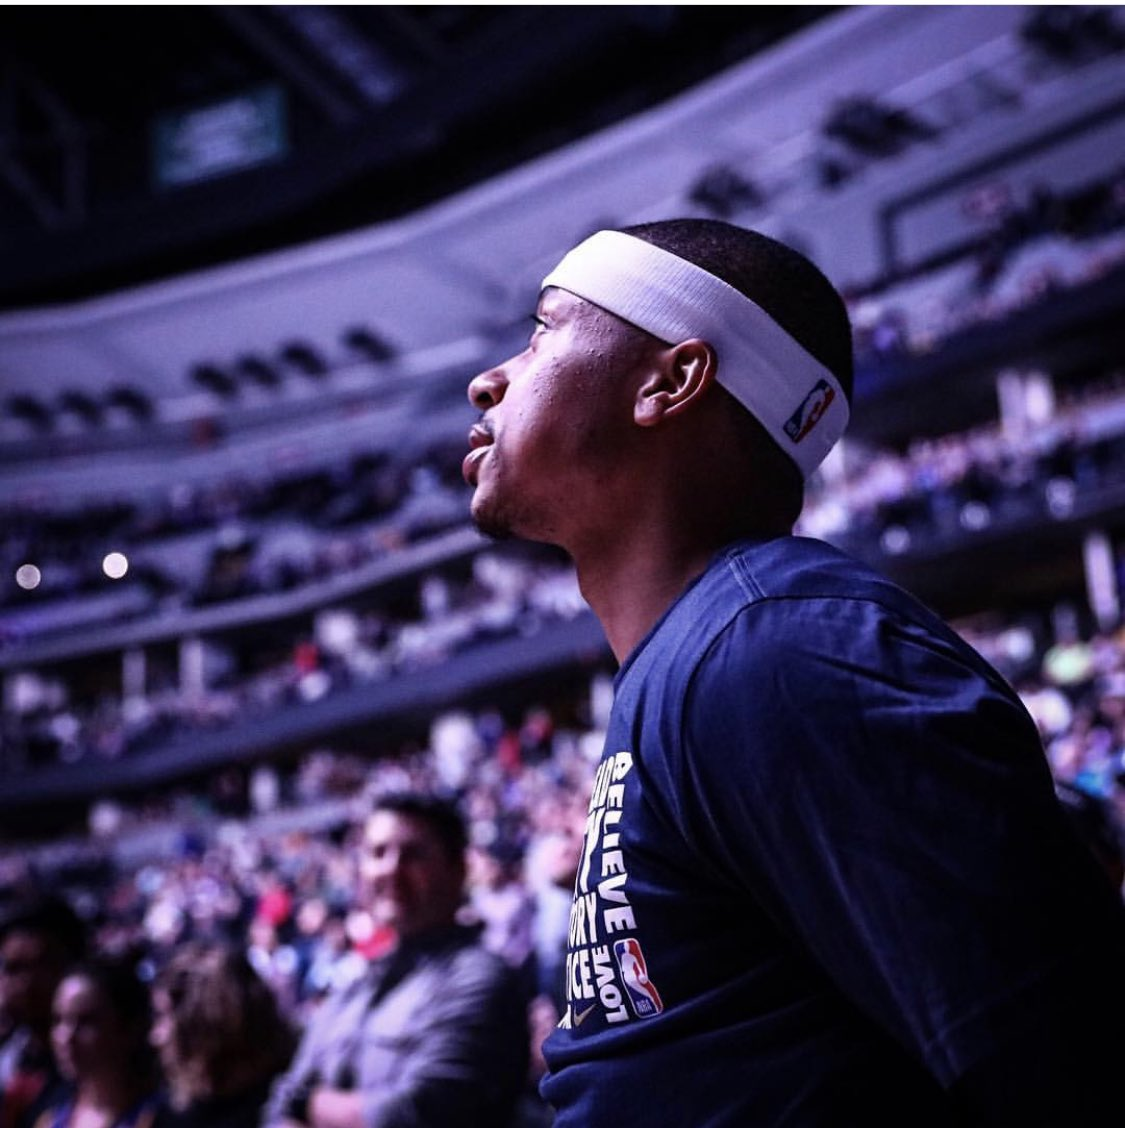 """Hard work always pays of even if takes some time it always does."" @isaiahthomas #SlowGrind"